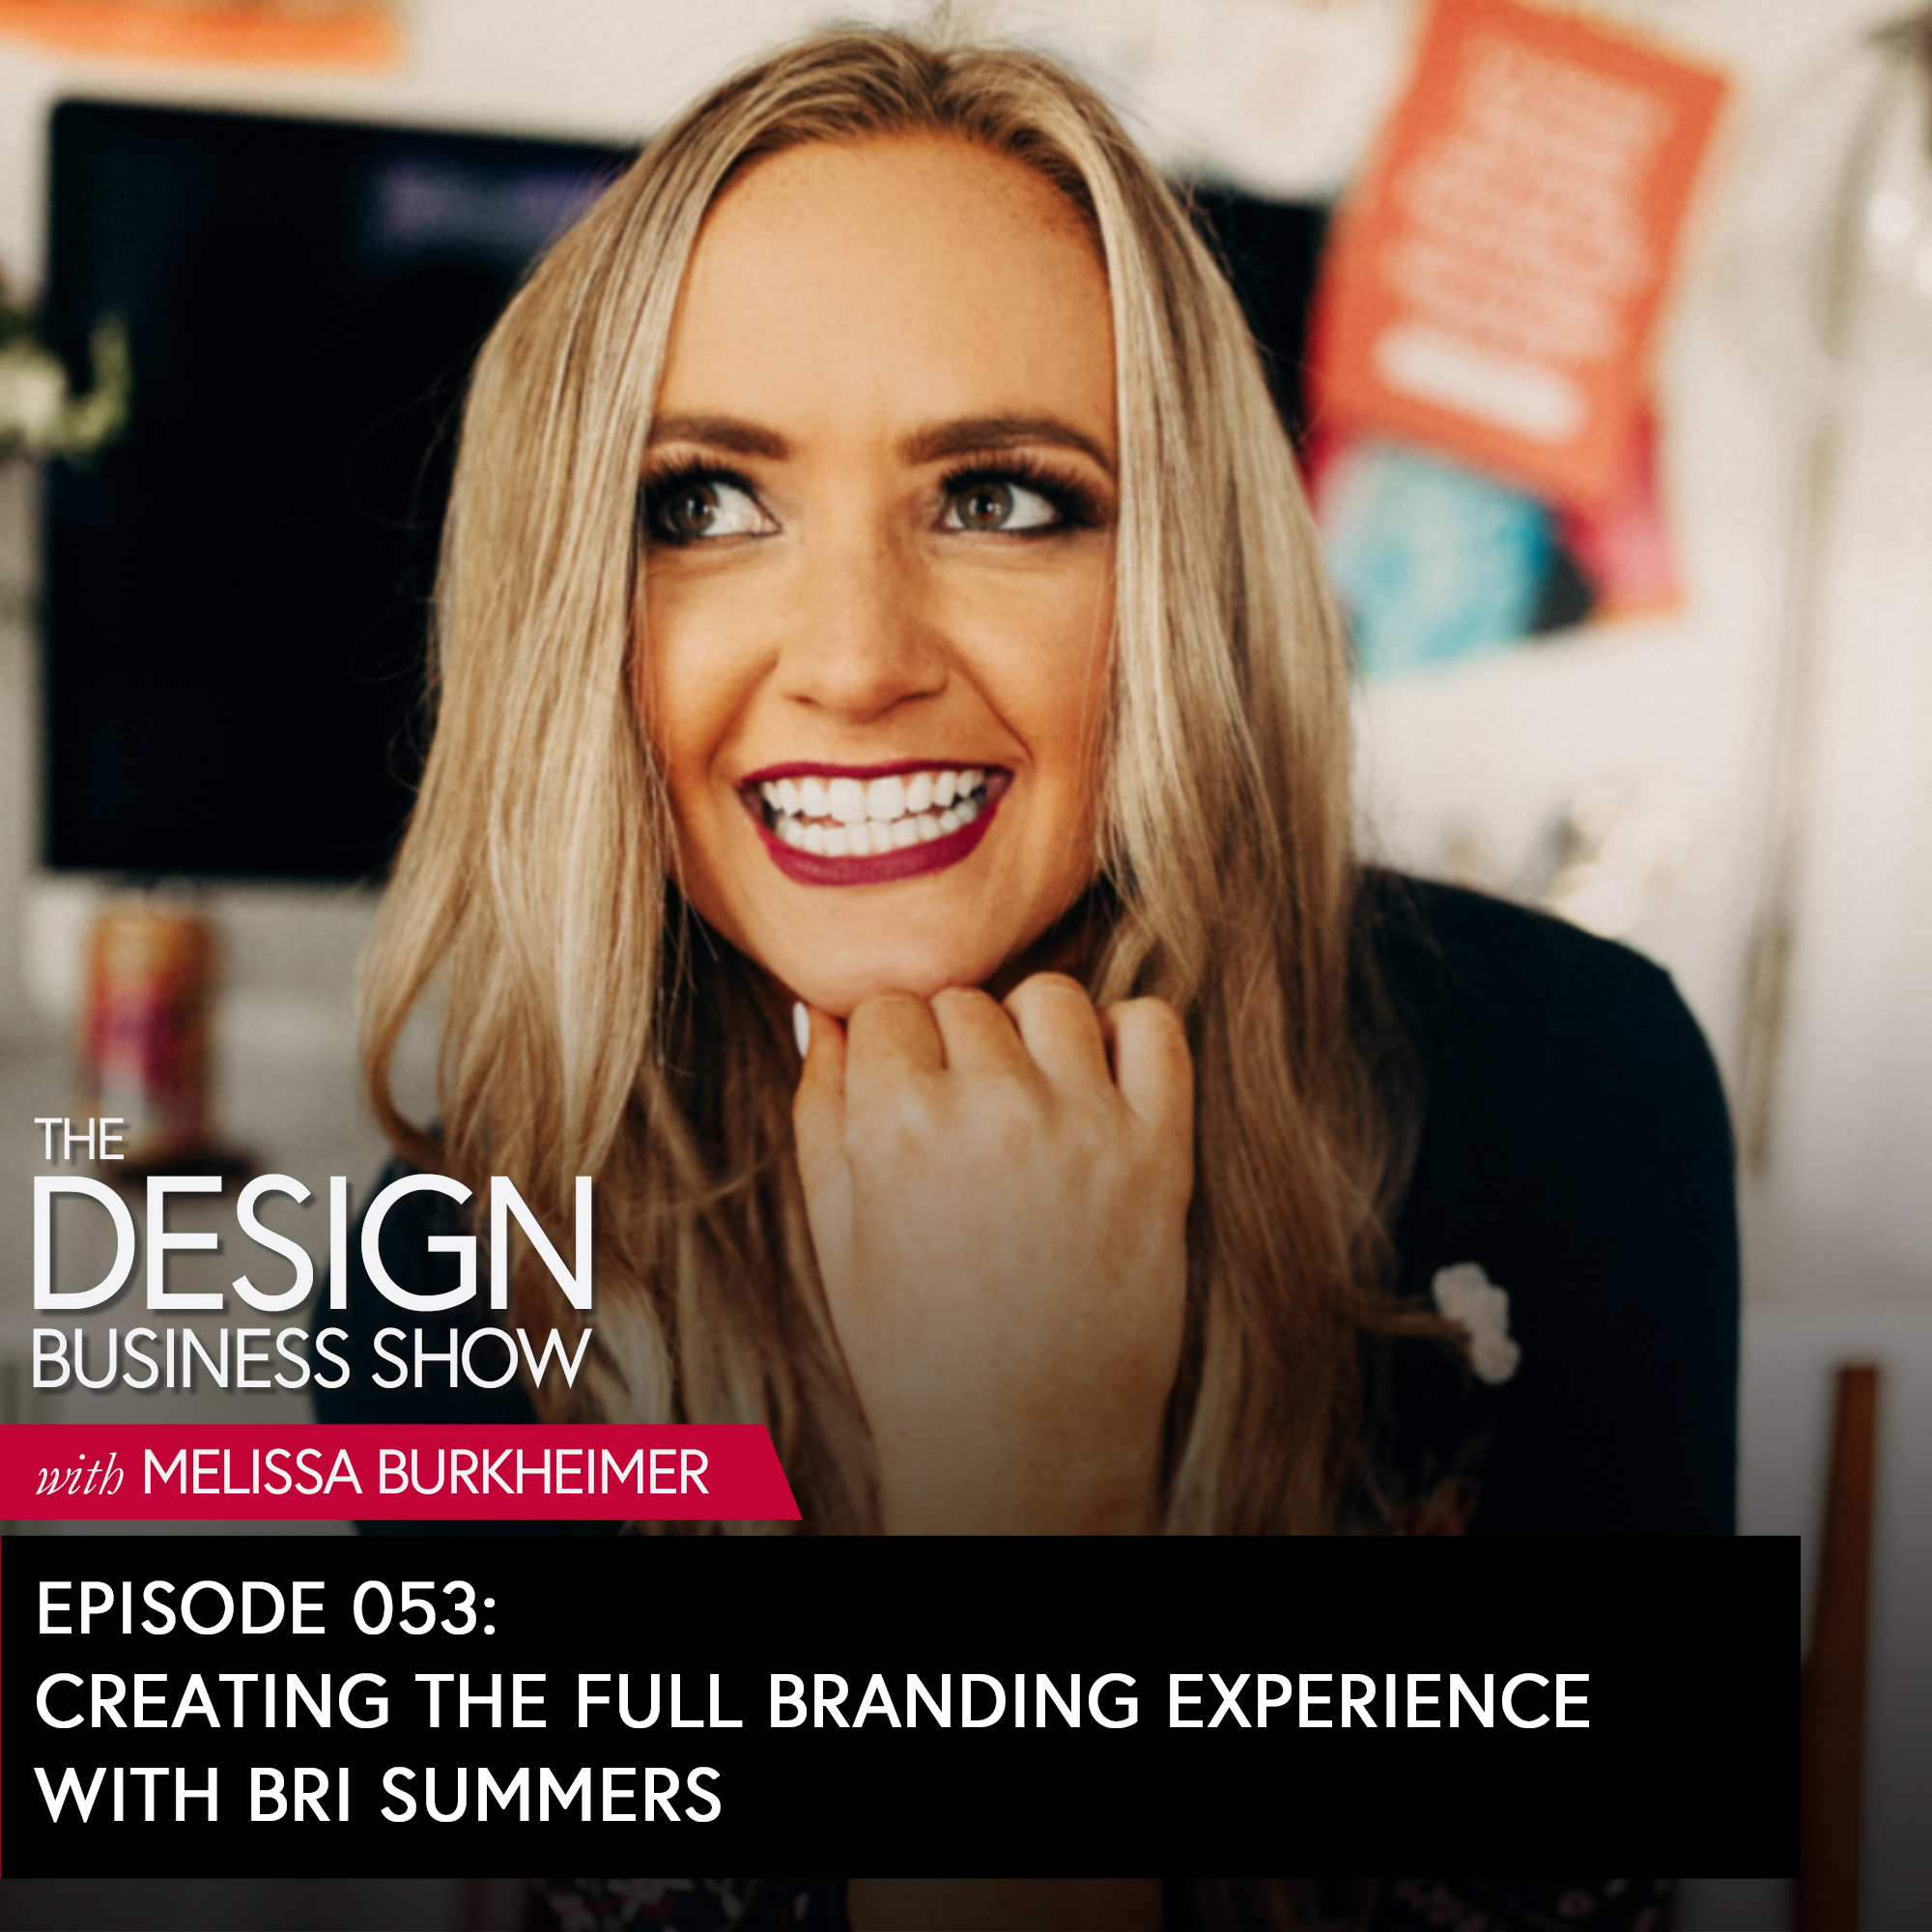 Check out episode 53 of The Design Business Show with Bri Summers from Brighten Made to get tips on using Pinterest + Instagram to promote your design business, how to create the full branding experience and more.